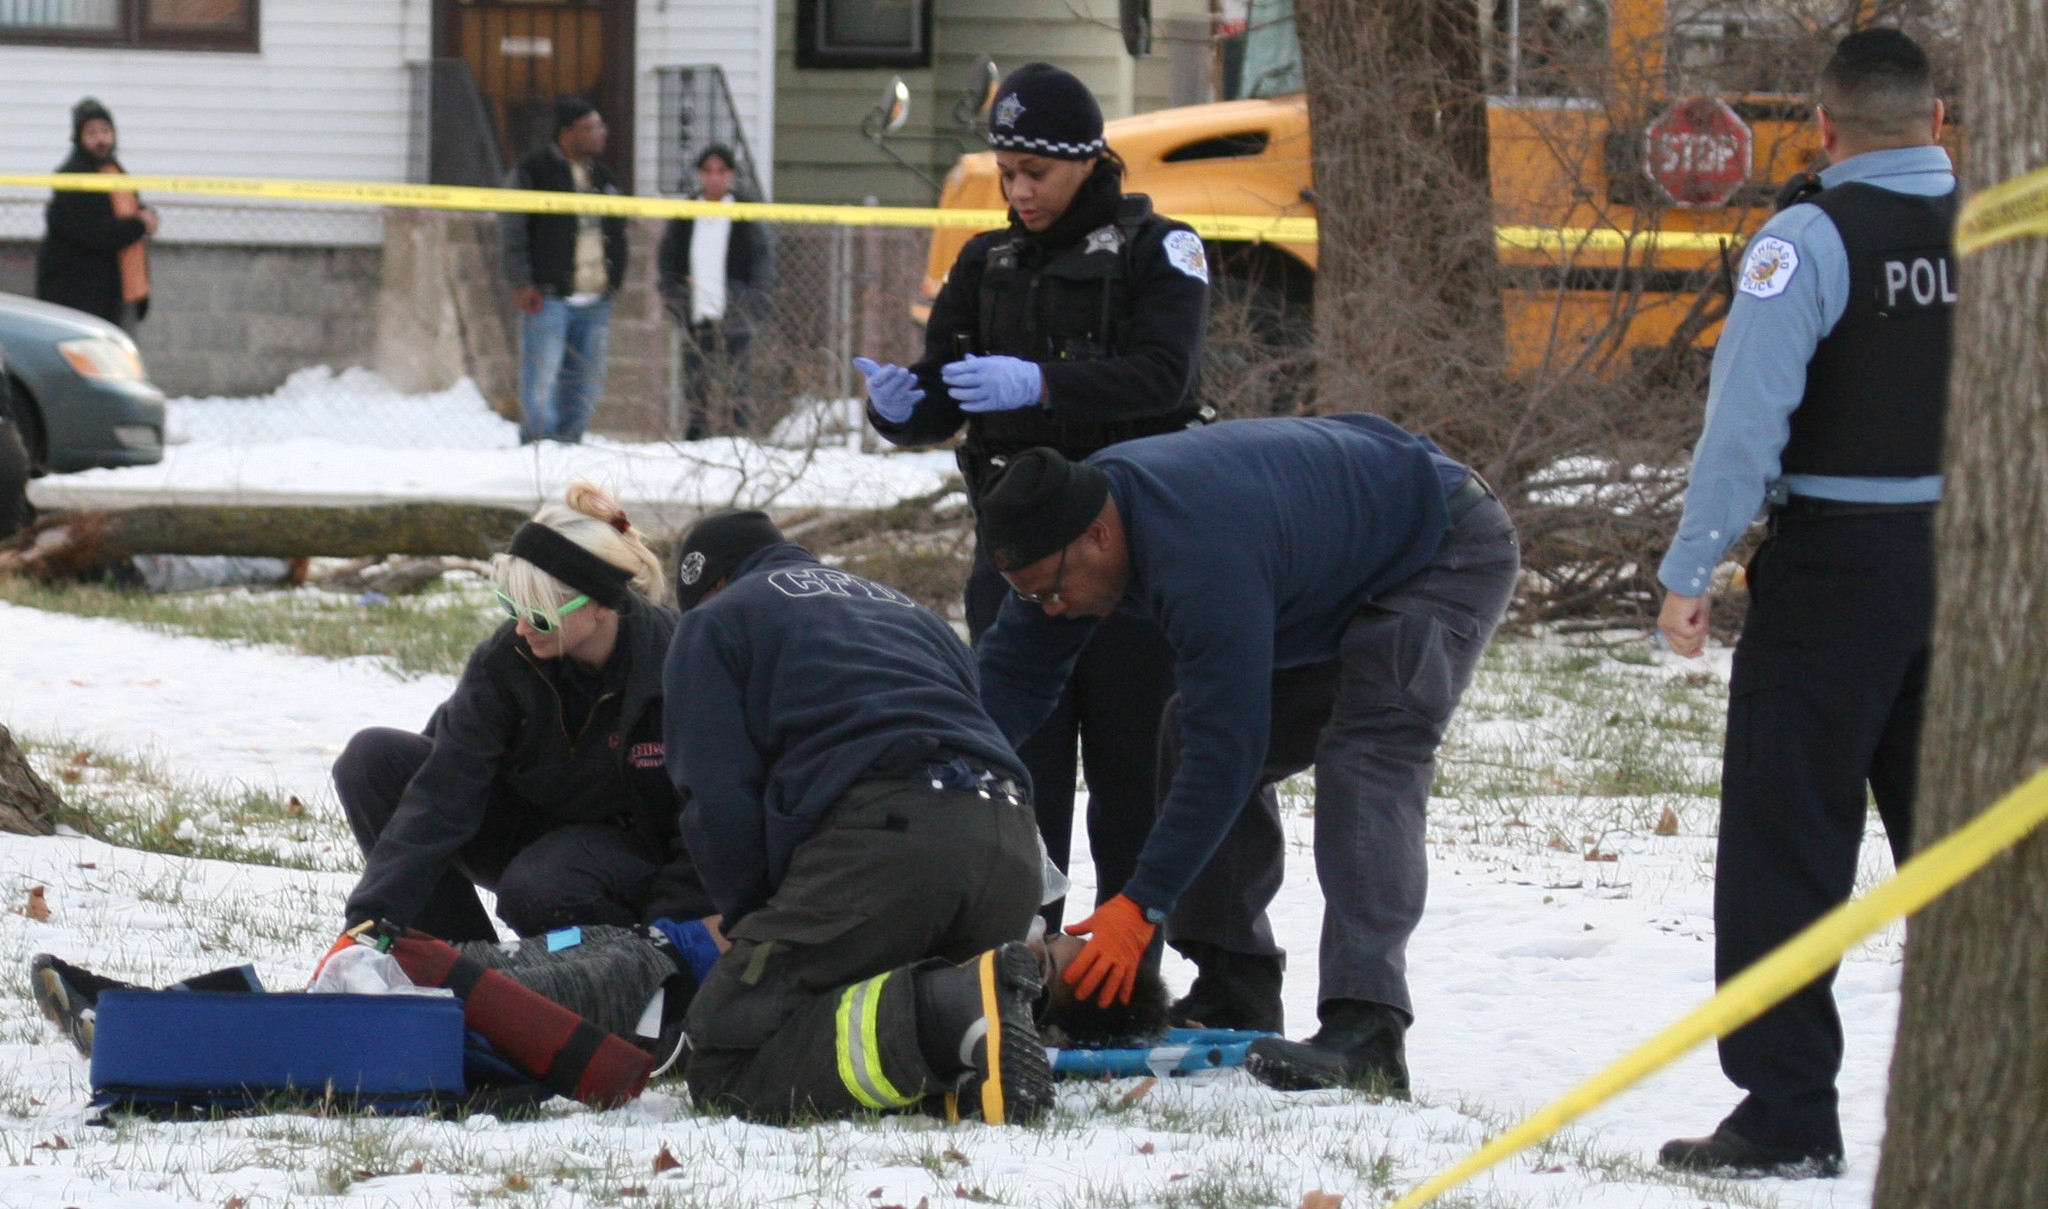 2 teens killed, 1 wounded in drive-by shooting: 'They just ...